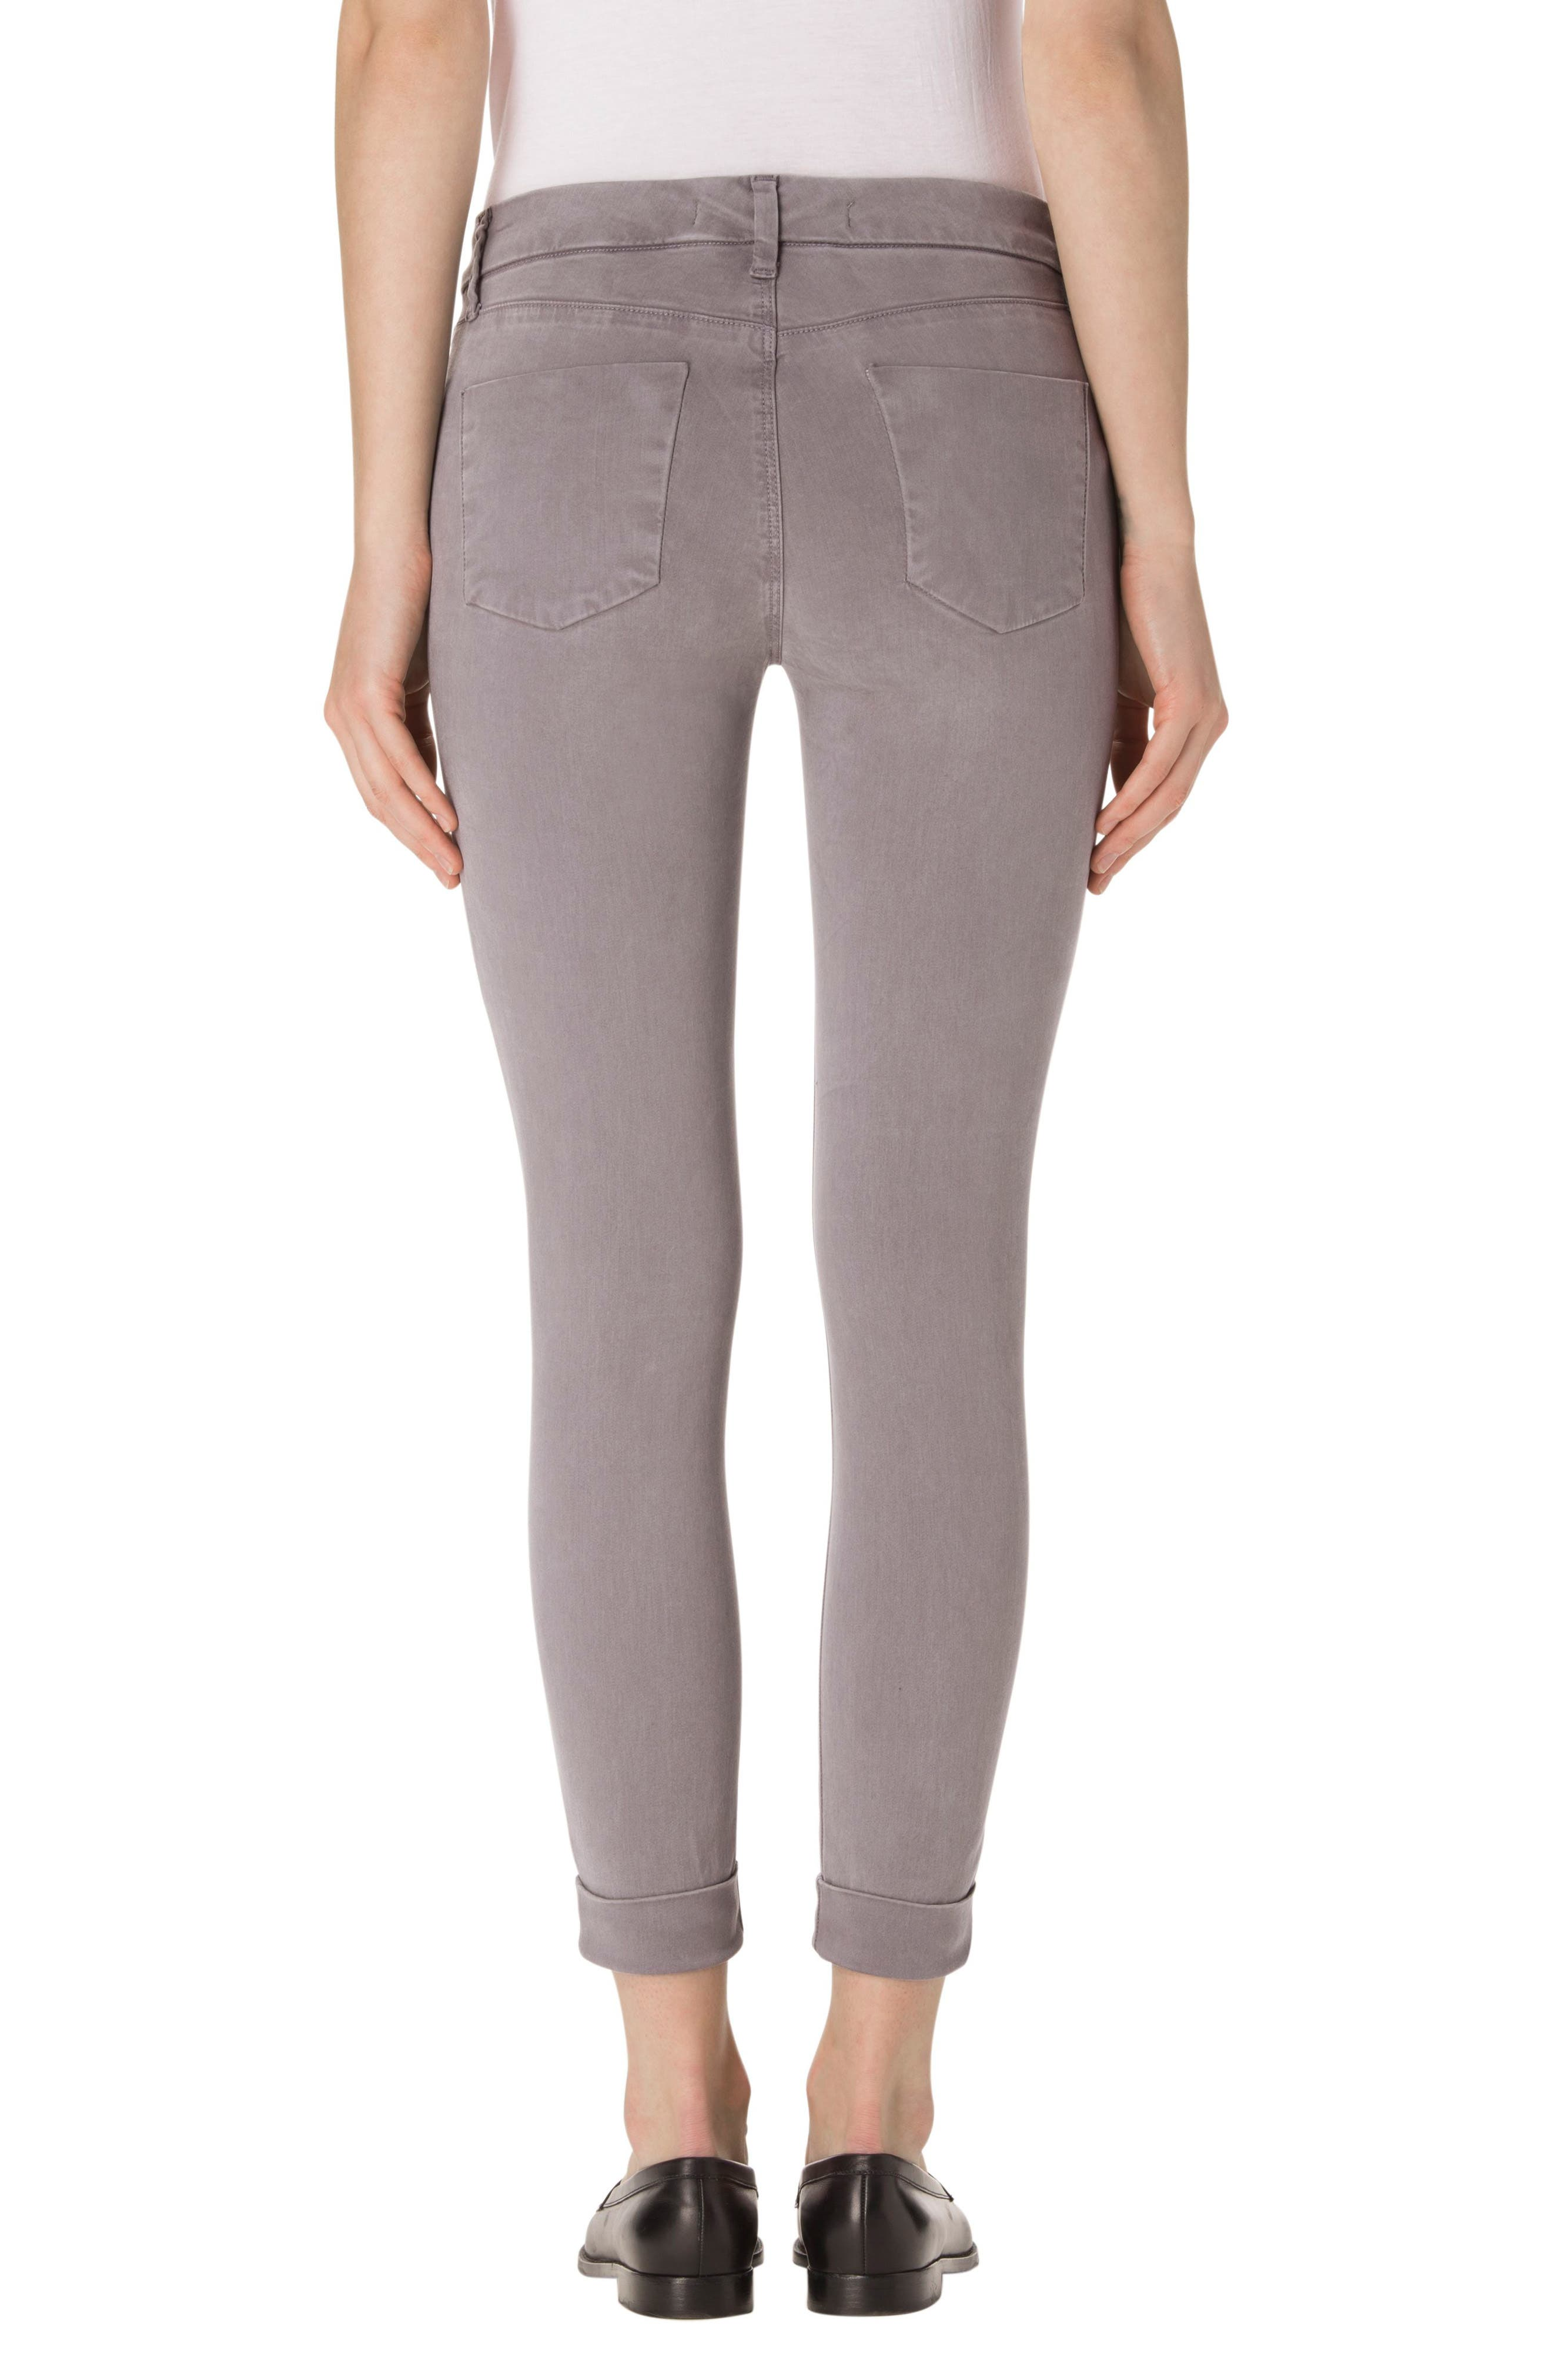 'Anja' Cuffed Crop Skinny Jeans,                             Alternate thumbnail 2, color,                             021